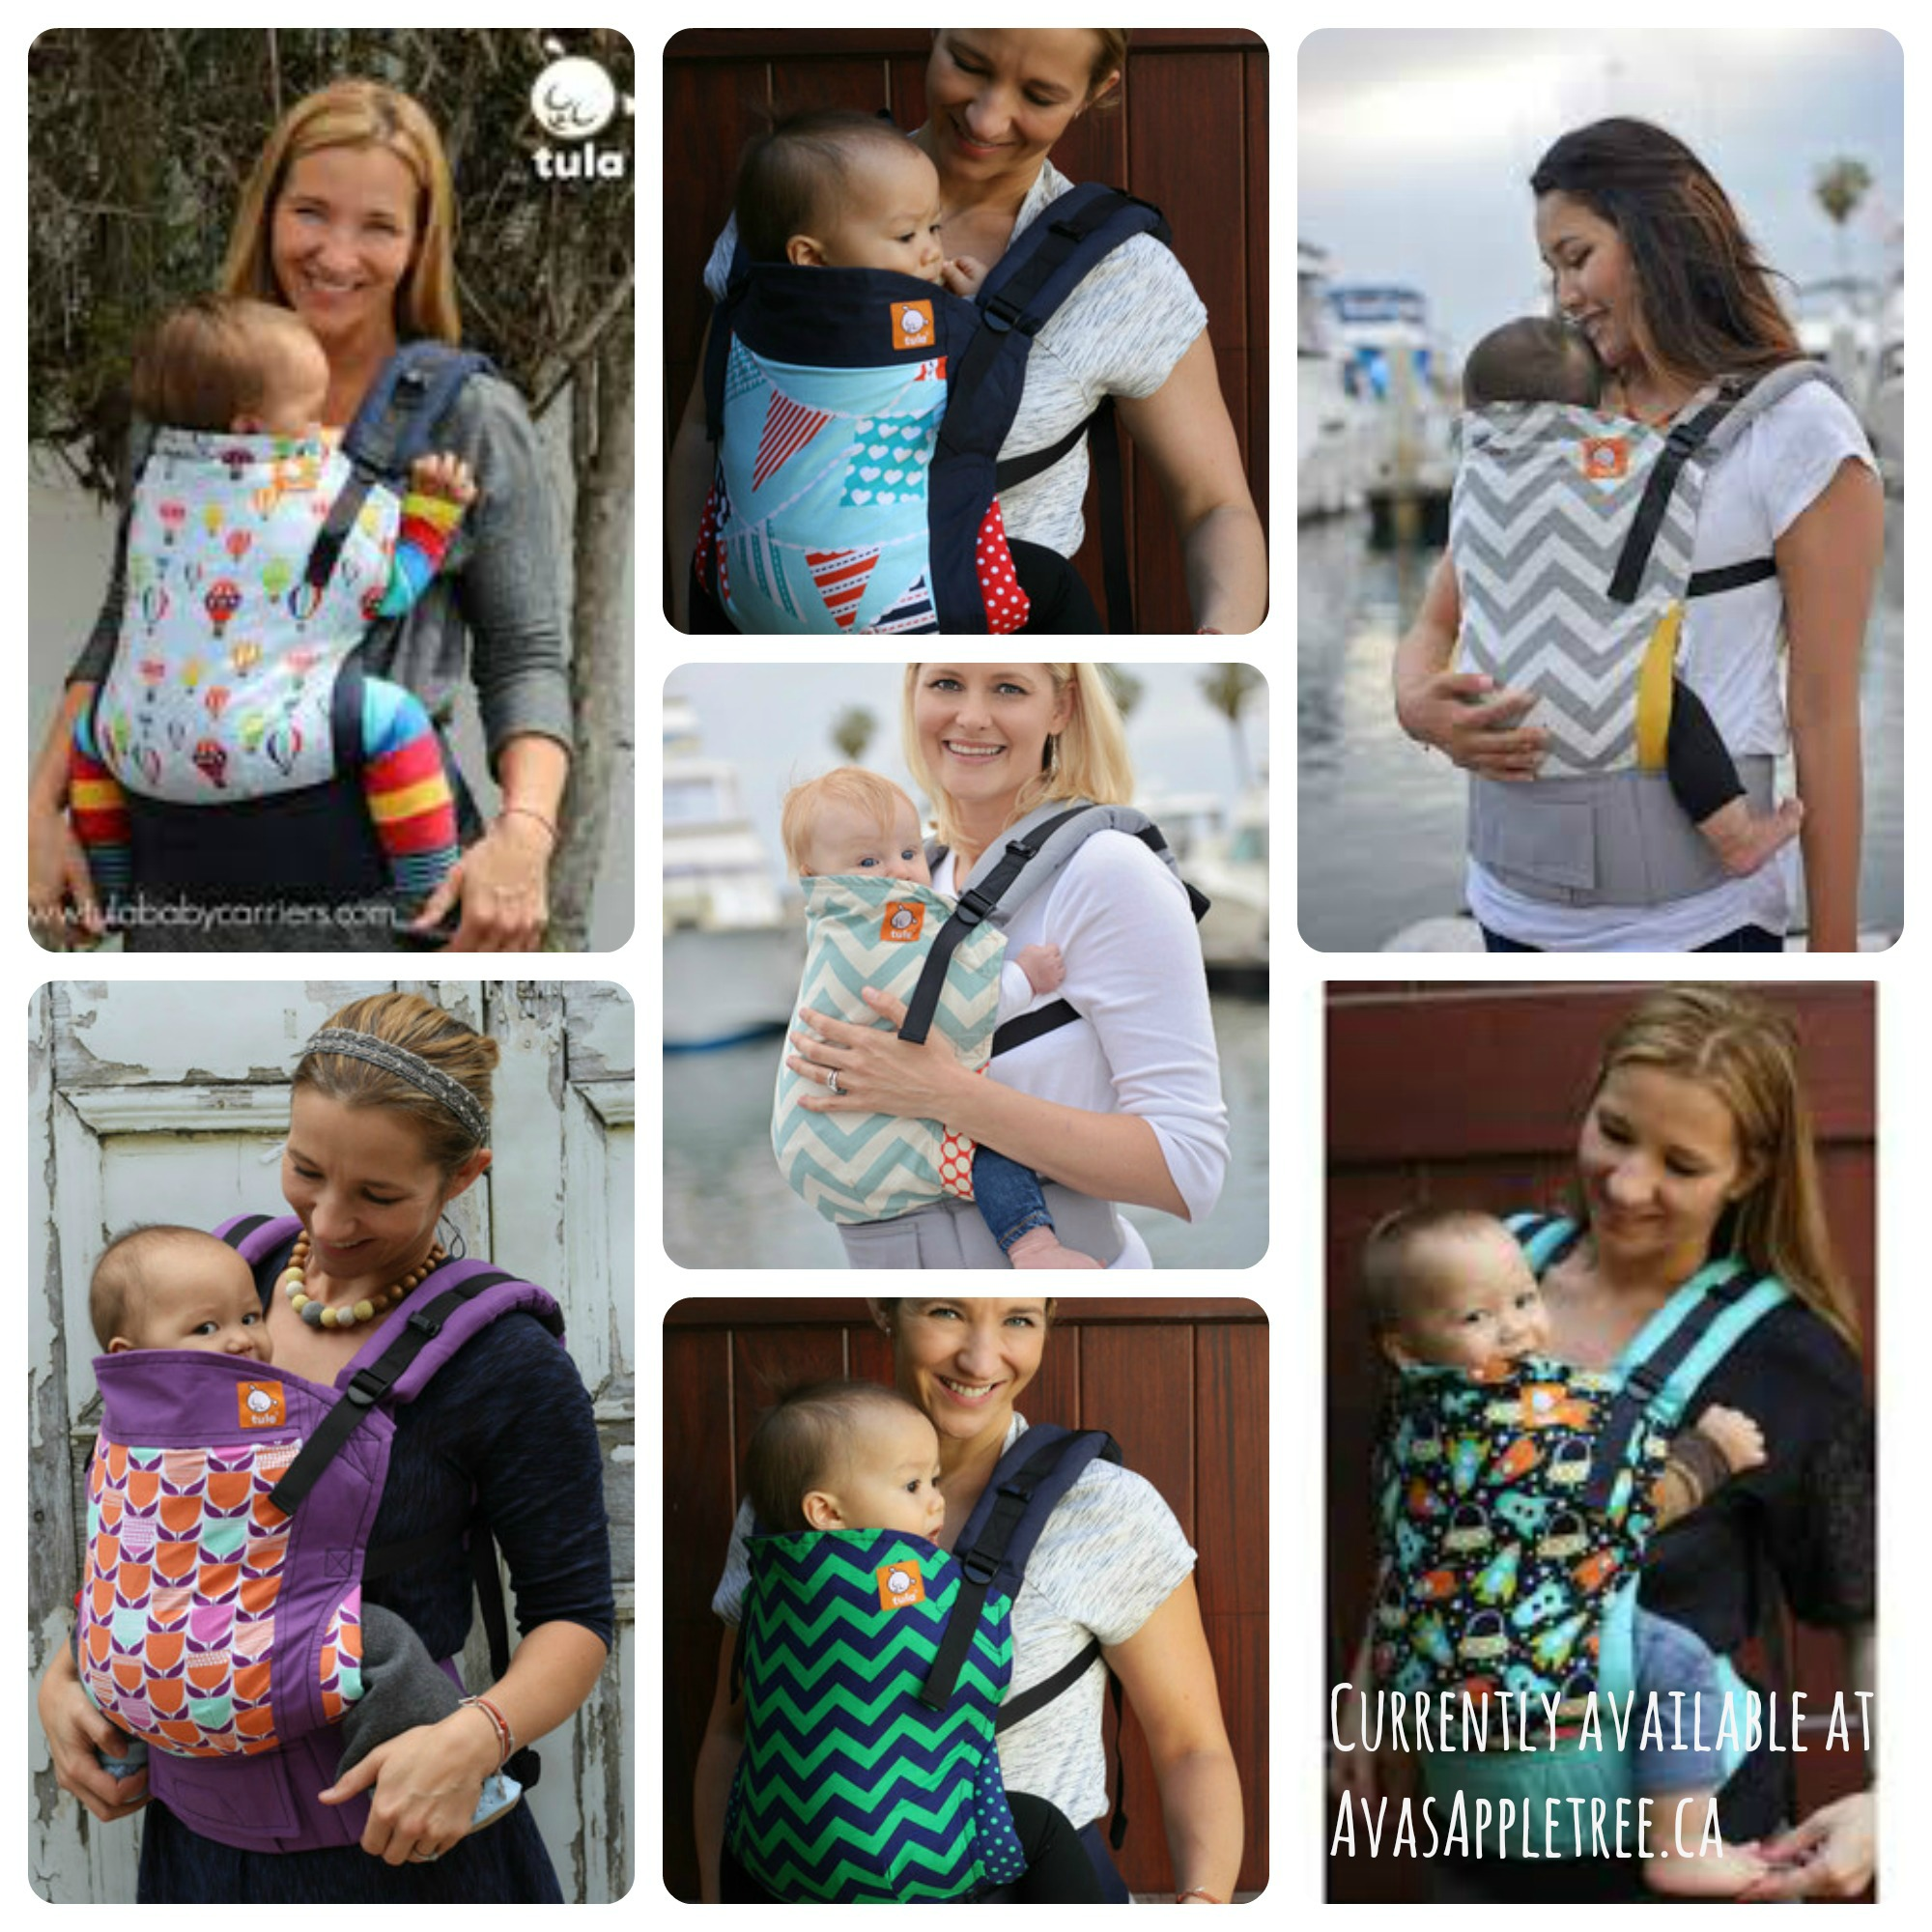 Tula Baby Carriers Shipping Throughout Canada Ava s Appletree